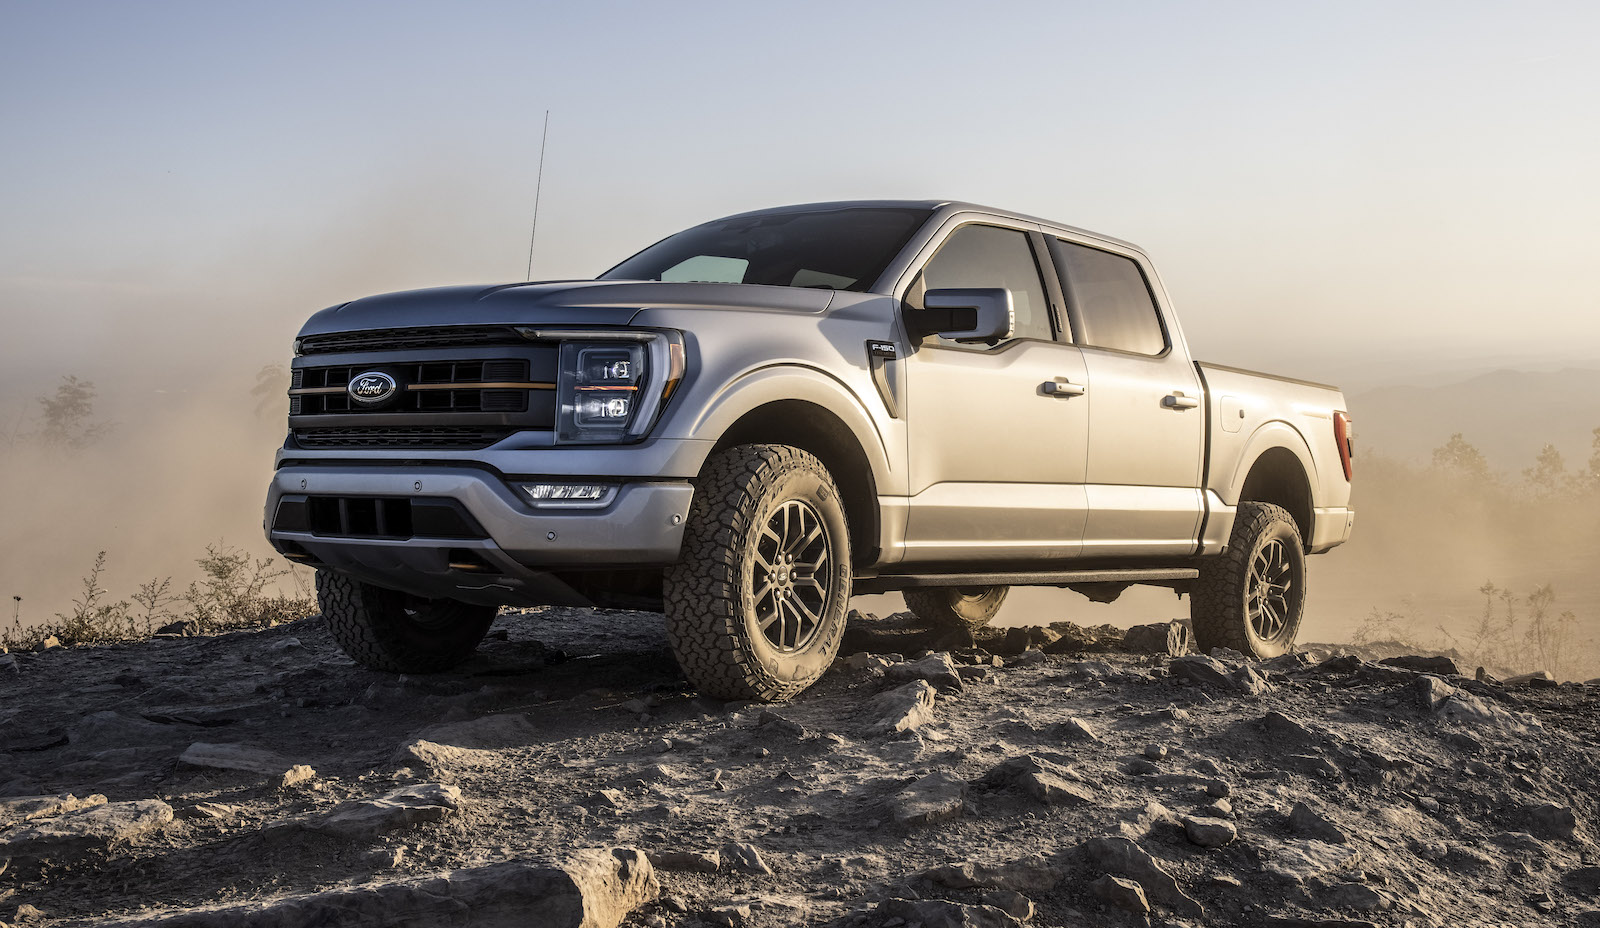 first look: 2021 ford f-150 tremor | the detroit bureau